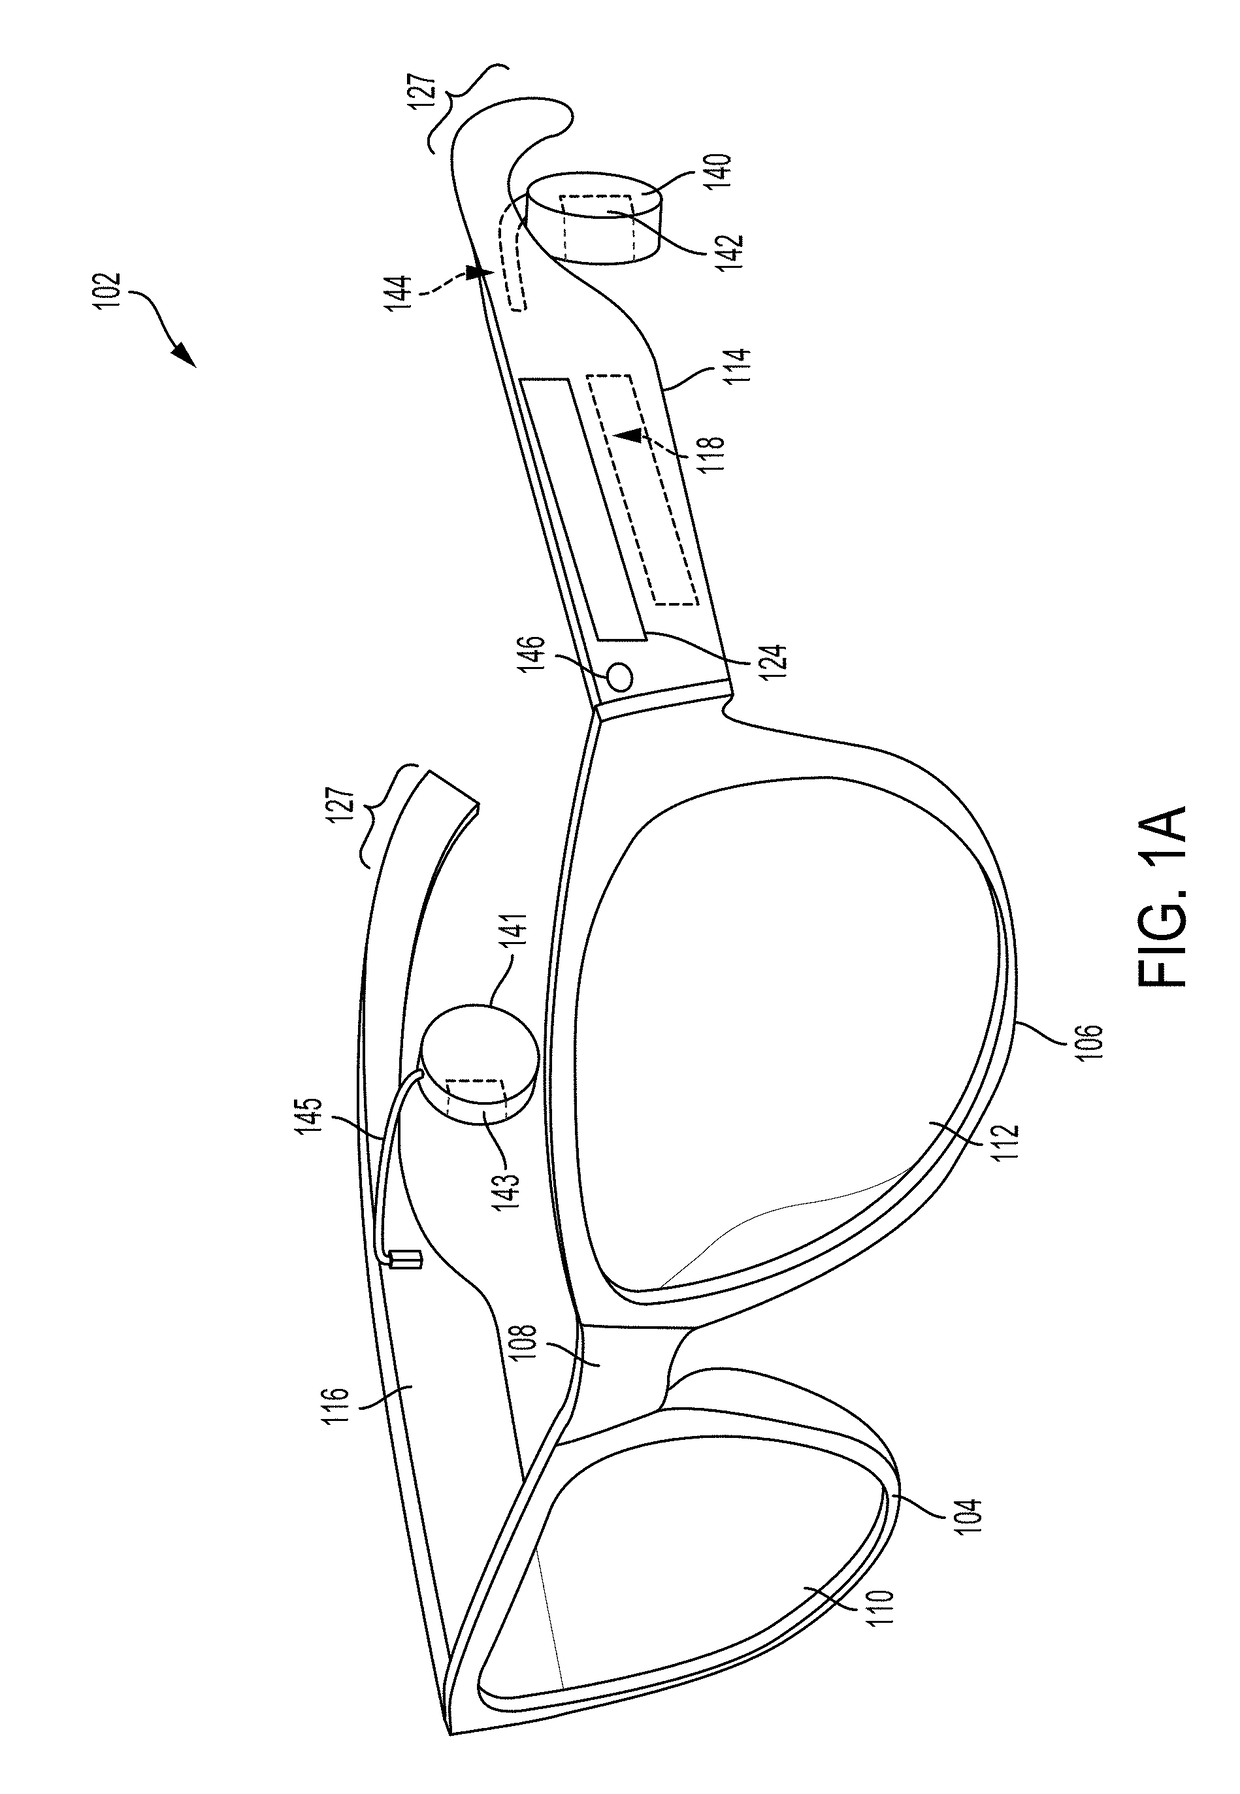 Turn Signals Google Patents On Wiring Turn Signals Toggle Switch